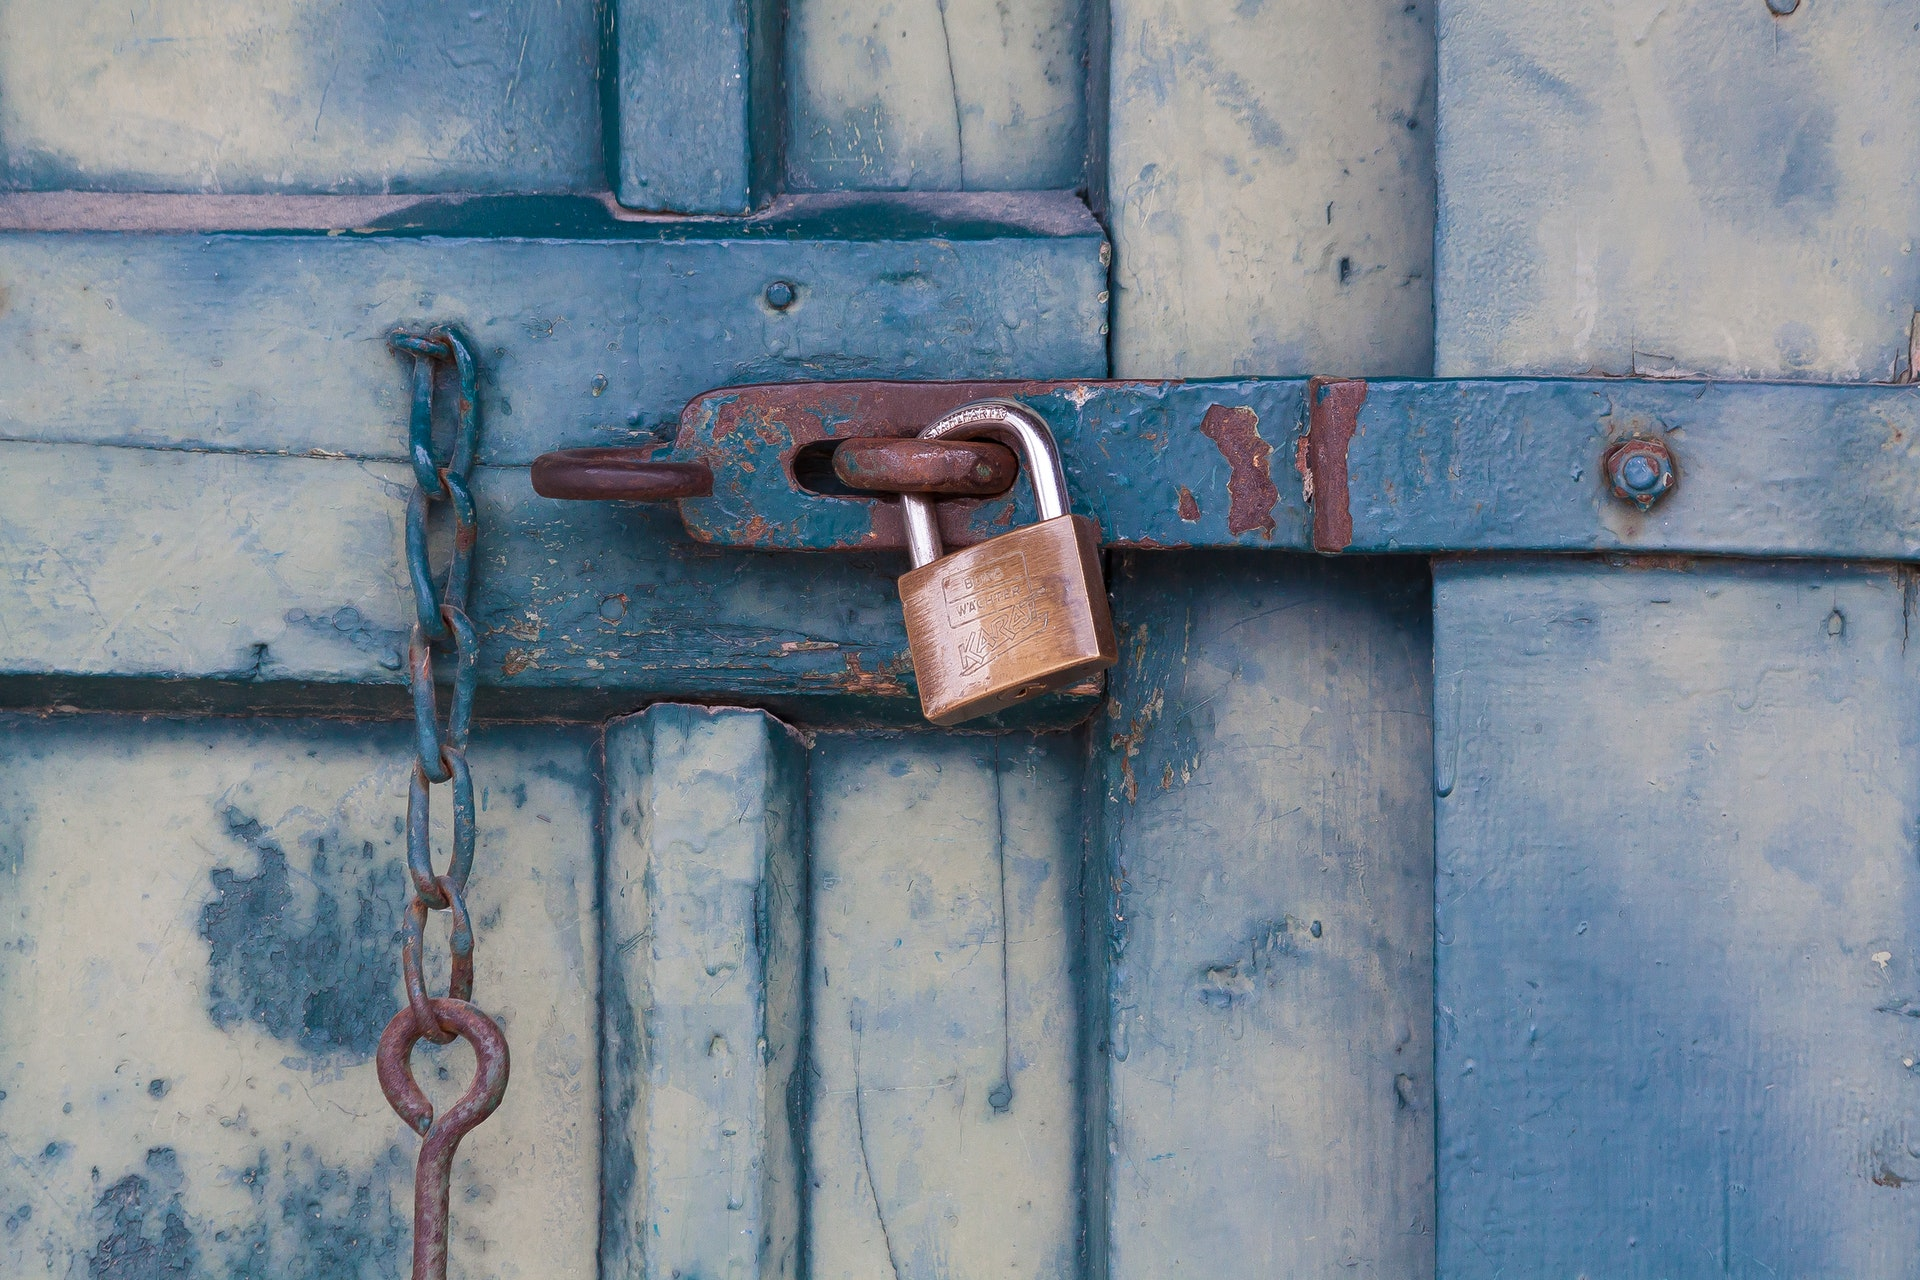 How law firms can stay secure when remote working